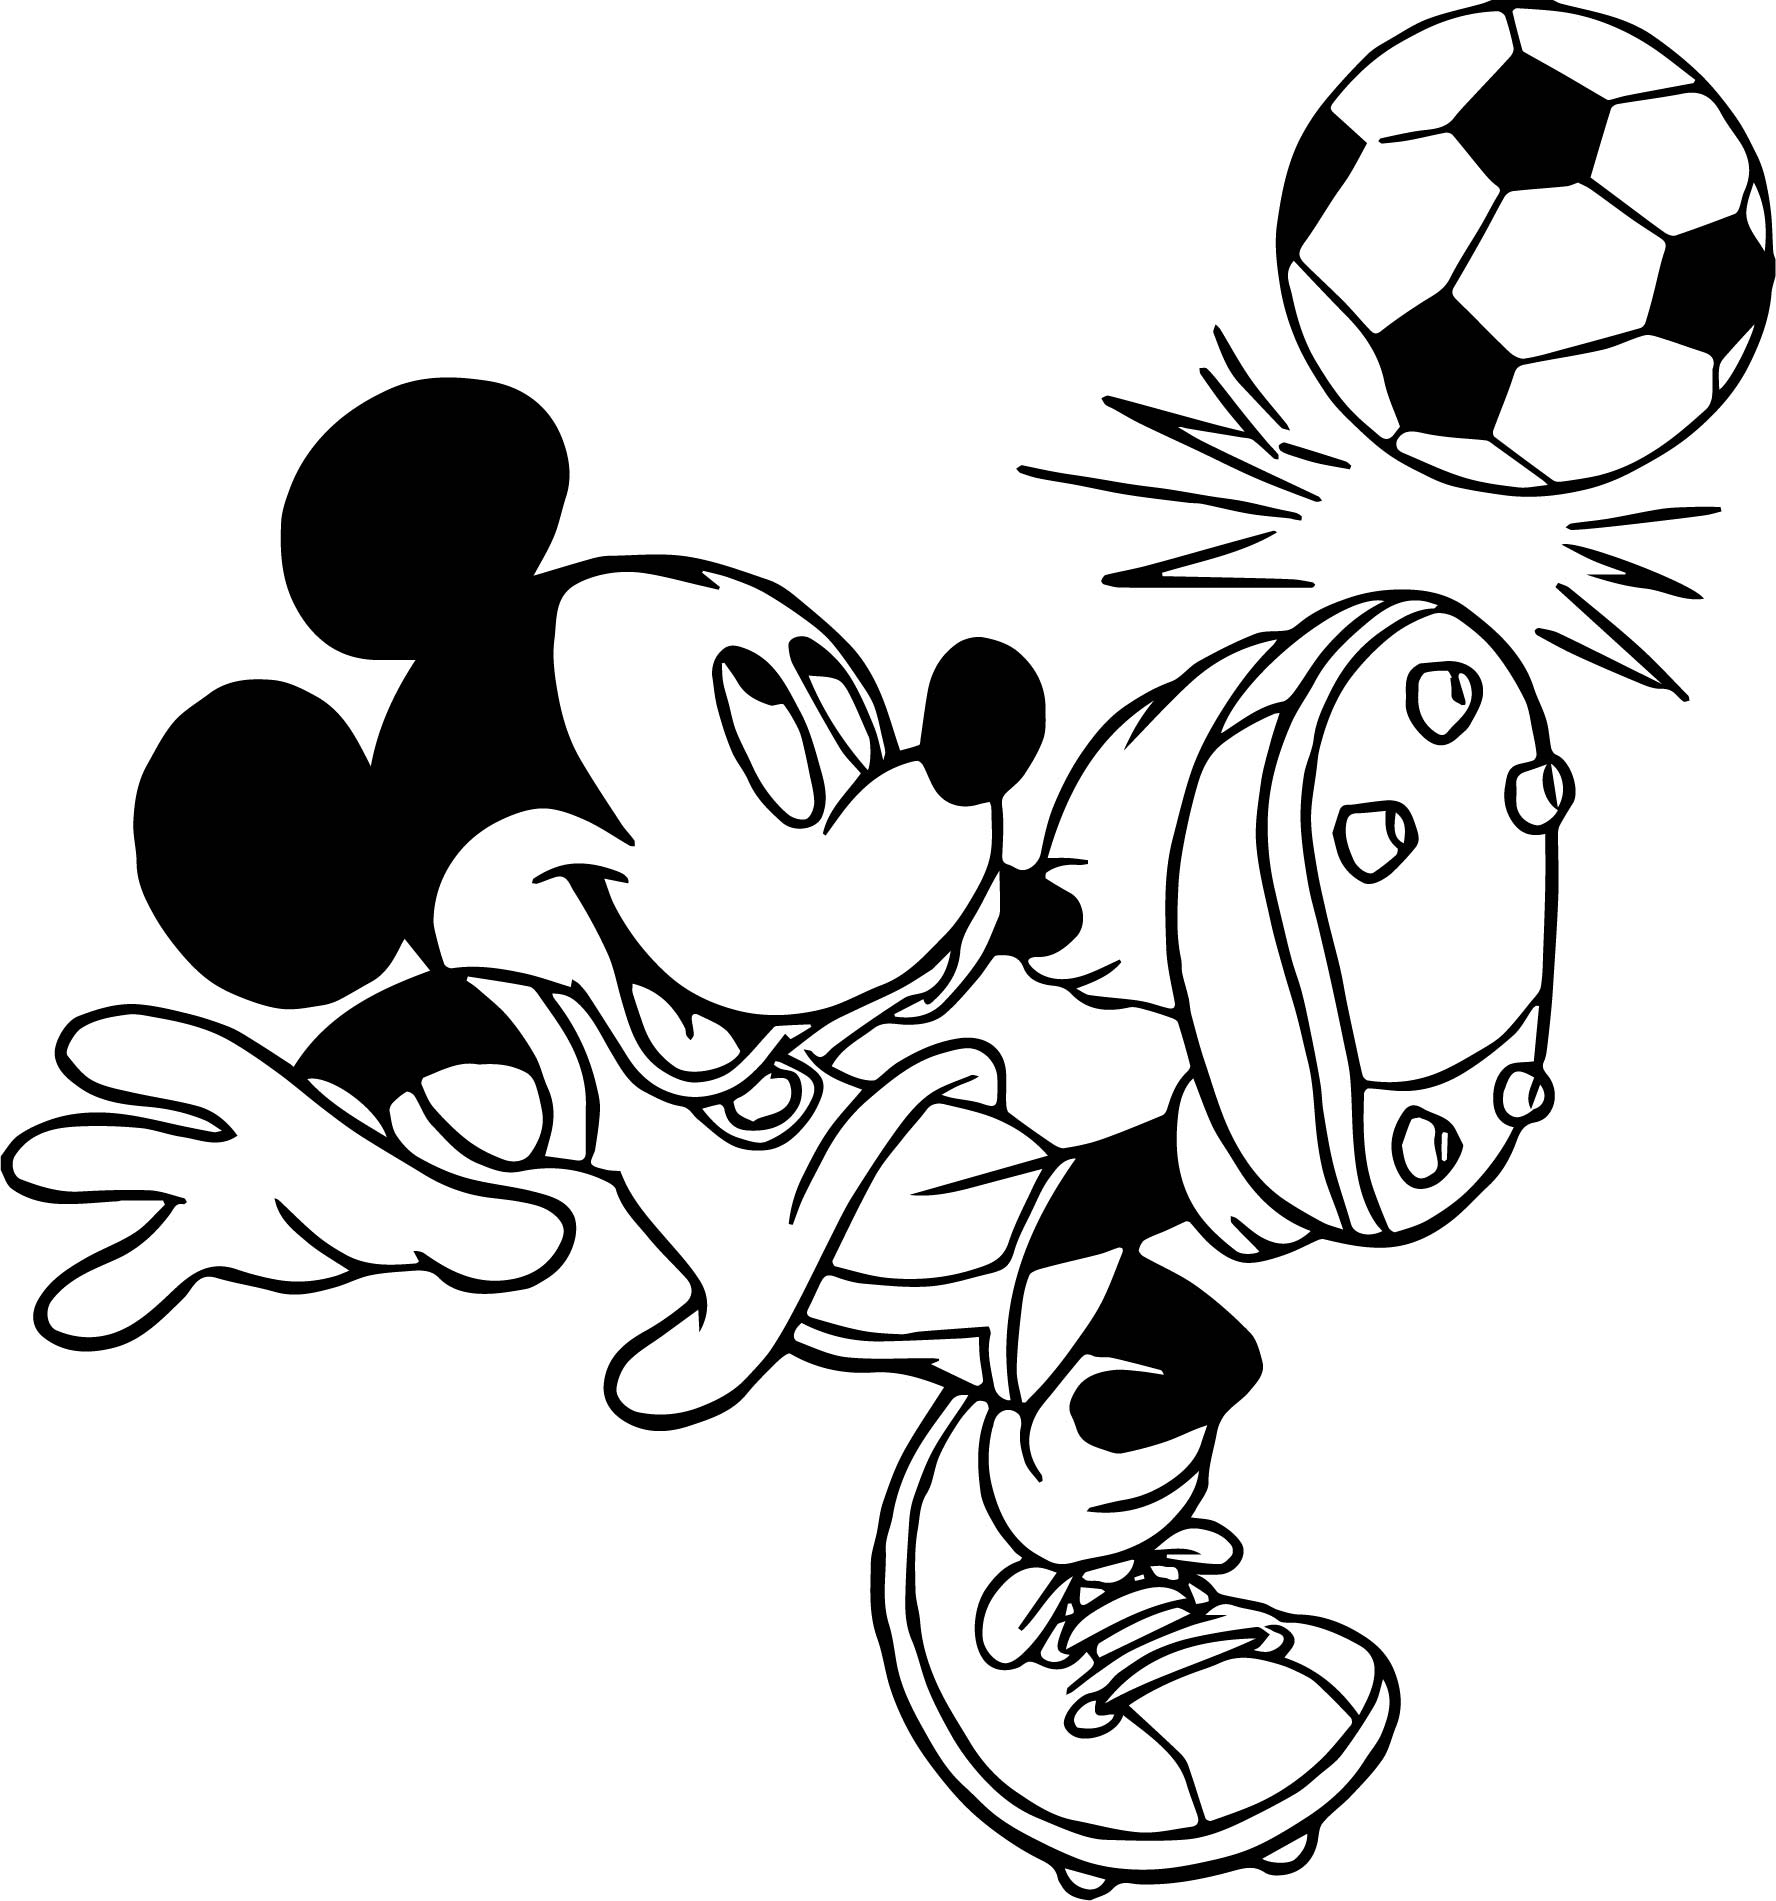 Soccer Player Mickey Mouse Kicks Ball Playing Football